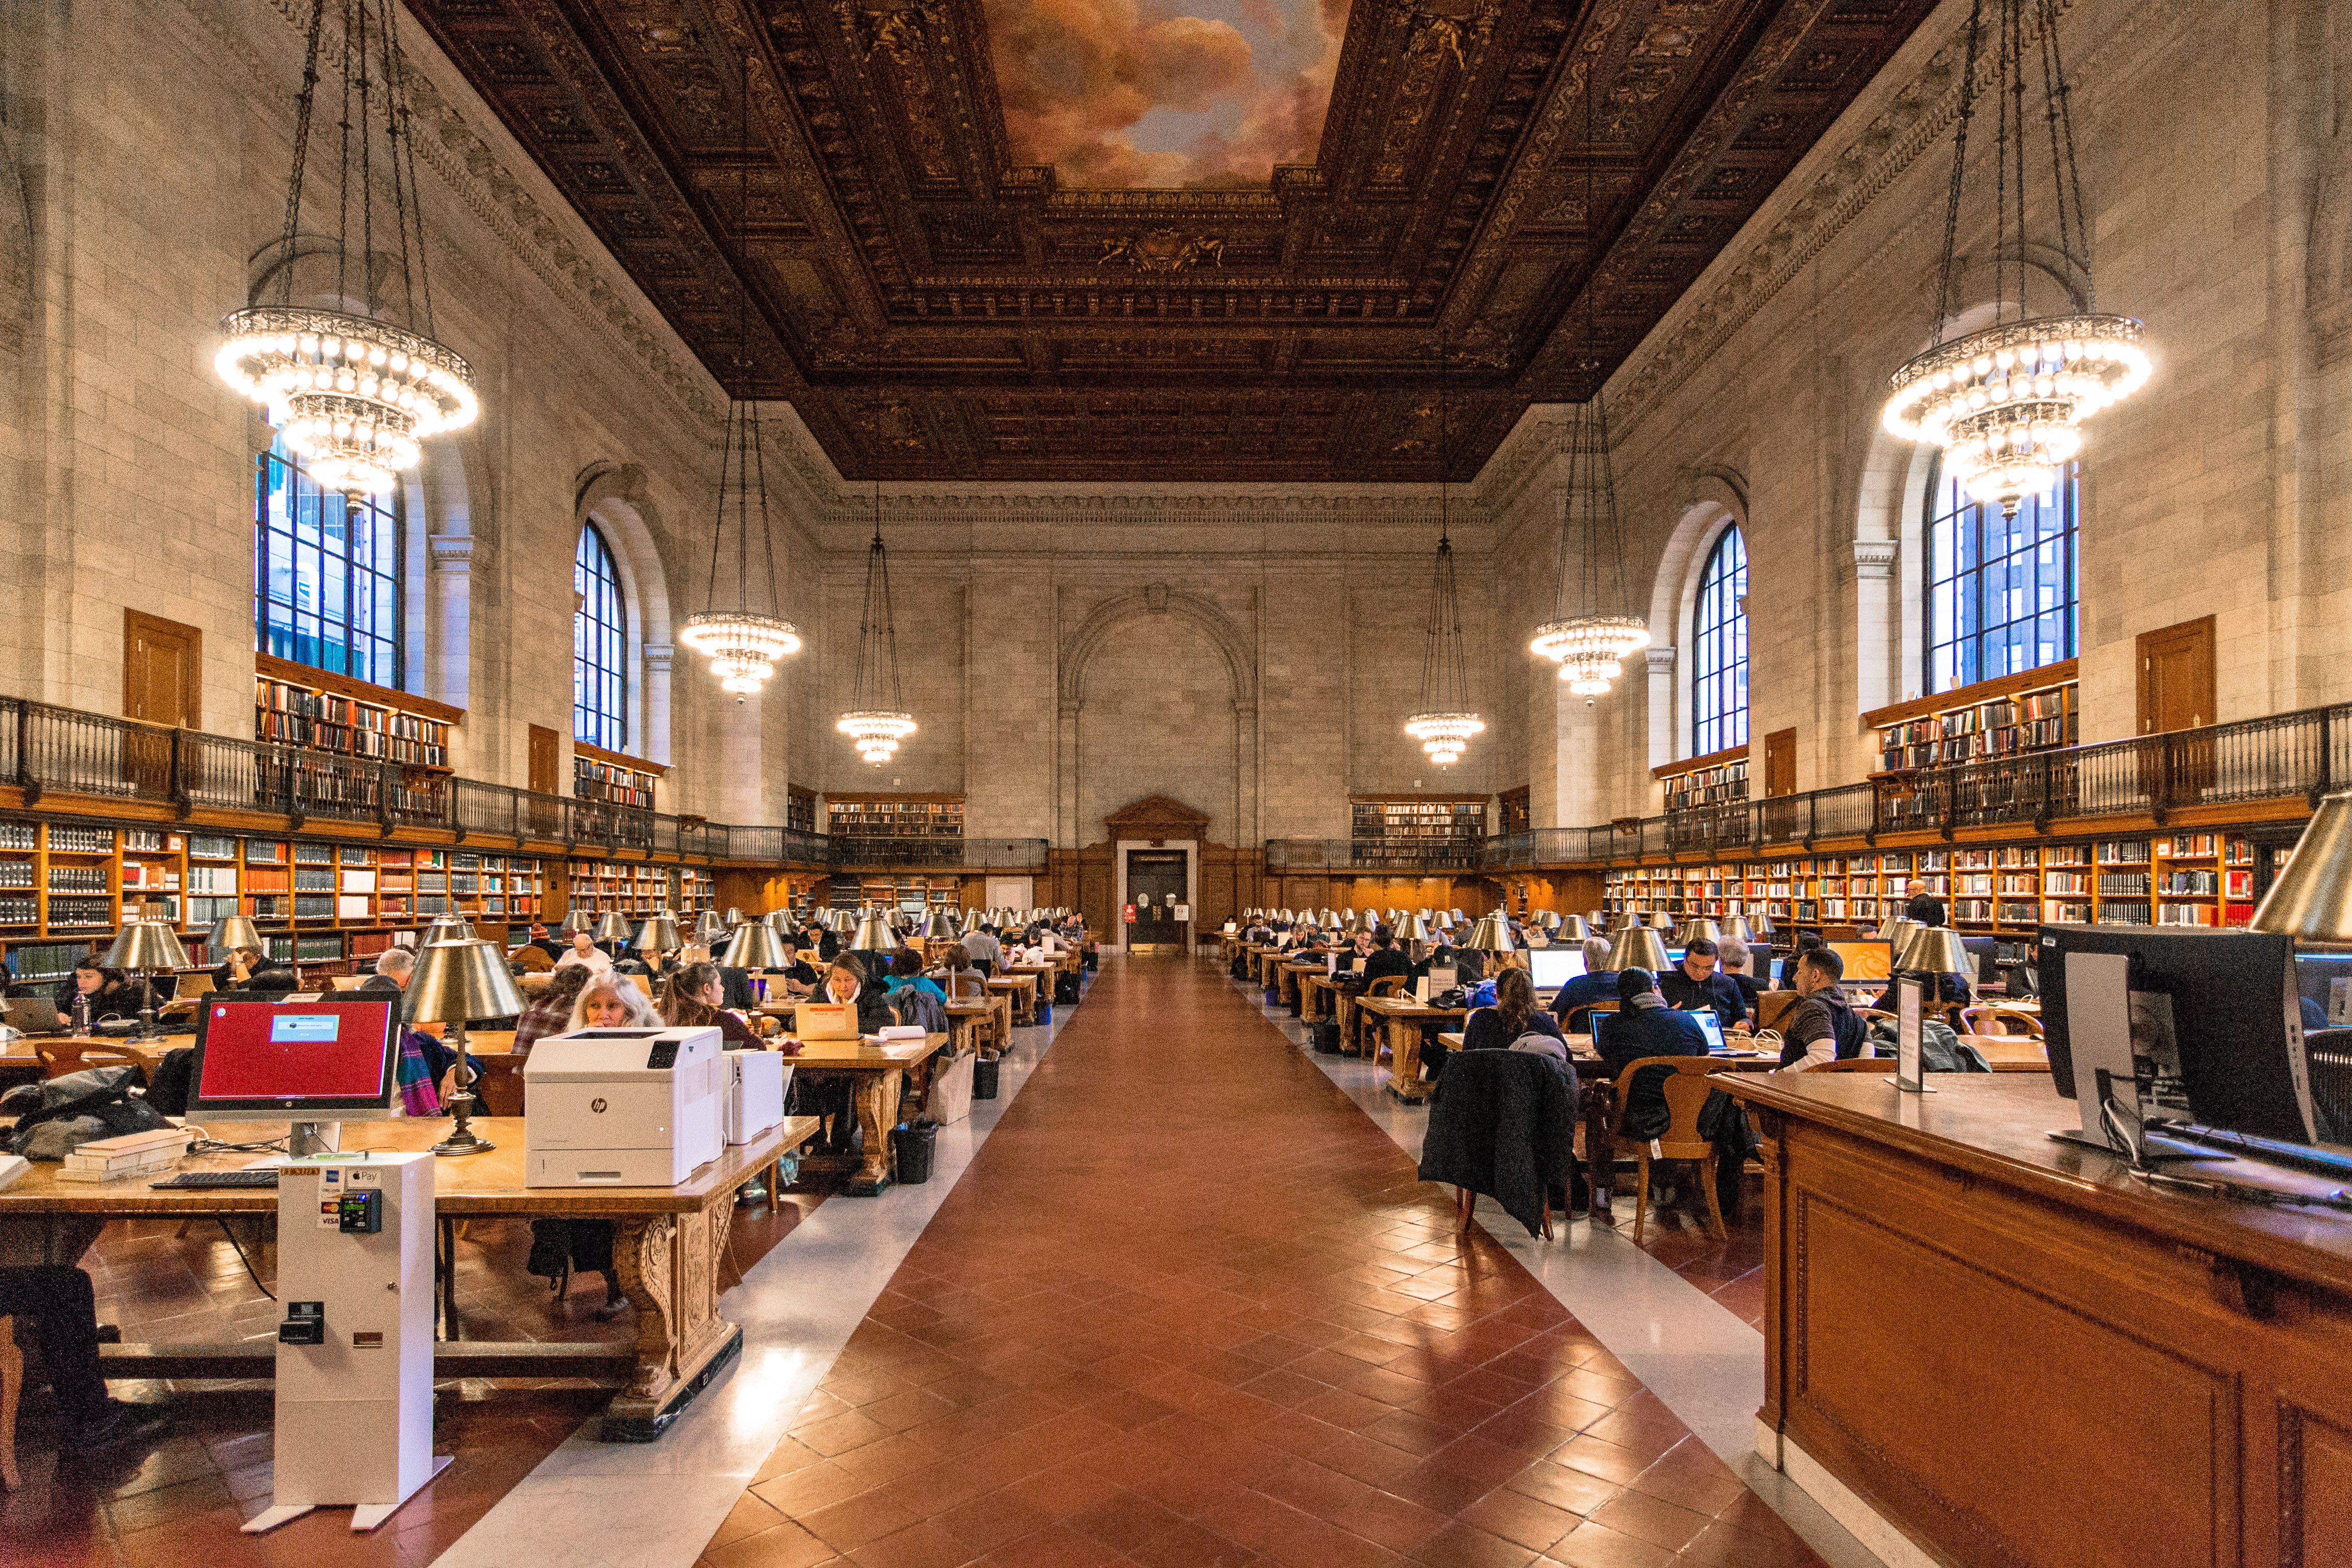 The rose room in the New York Public Library